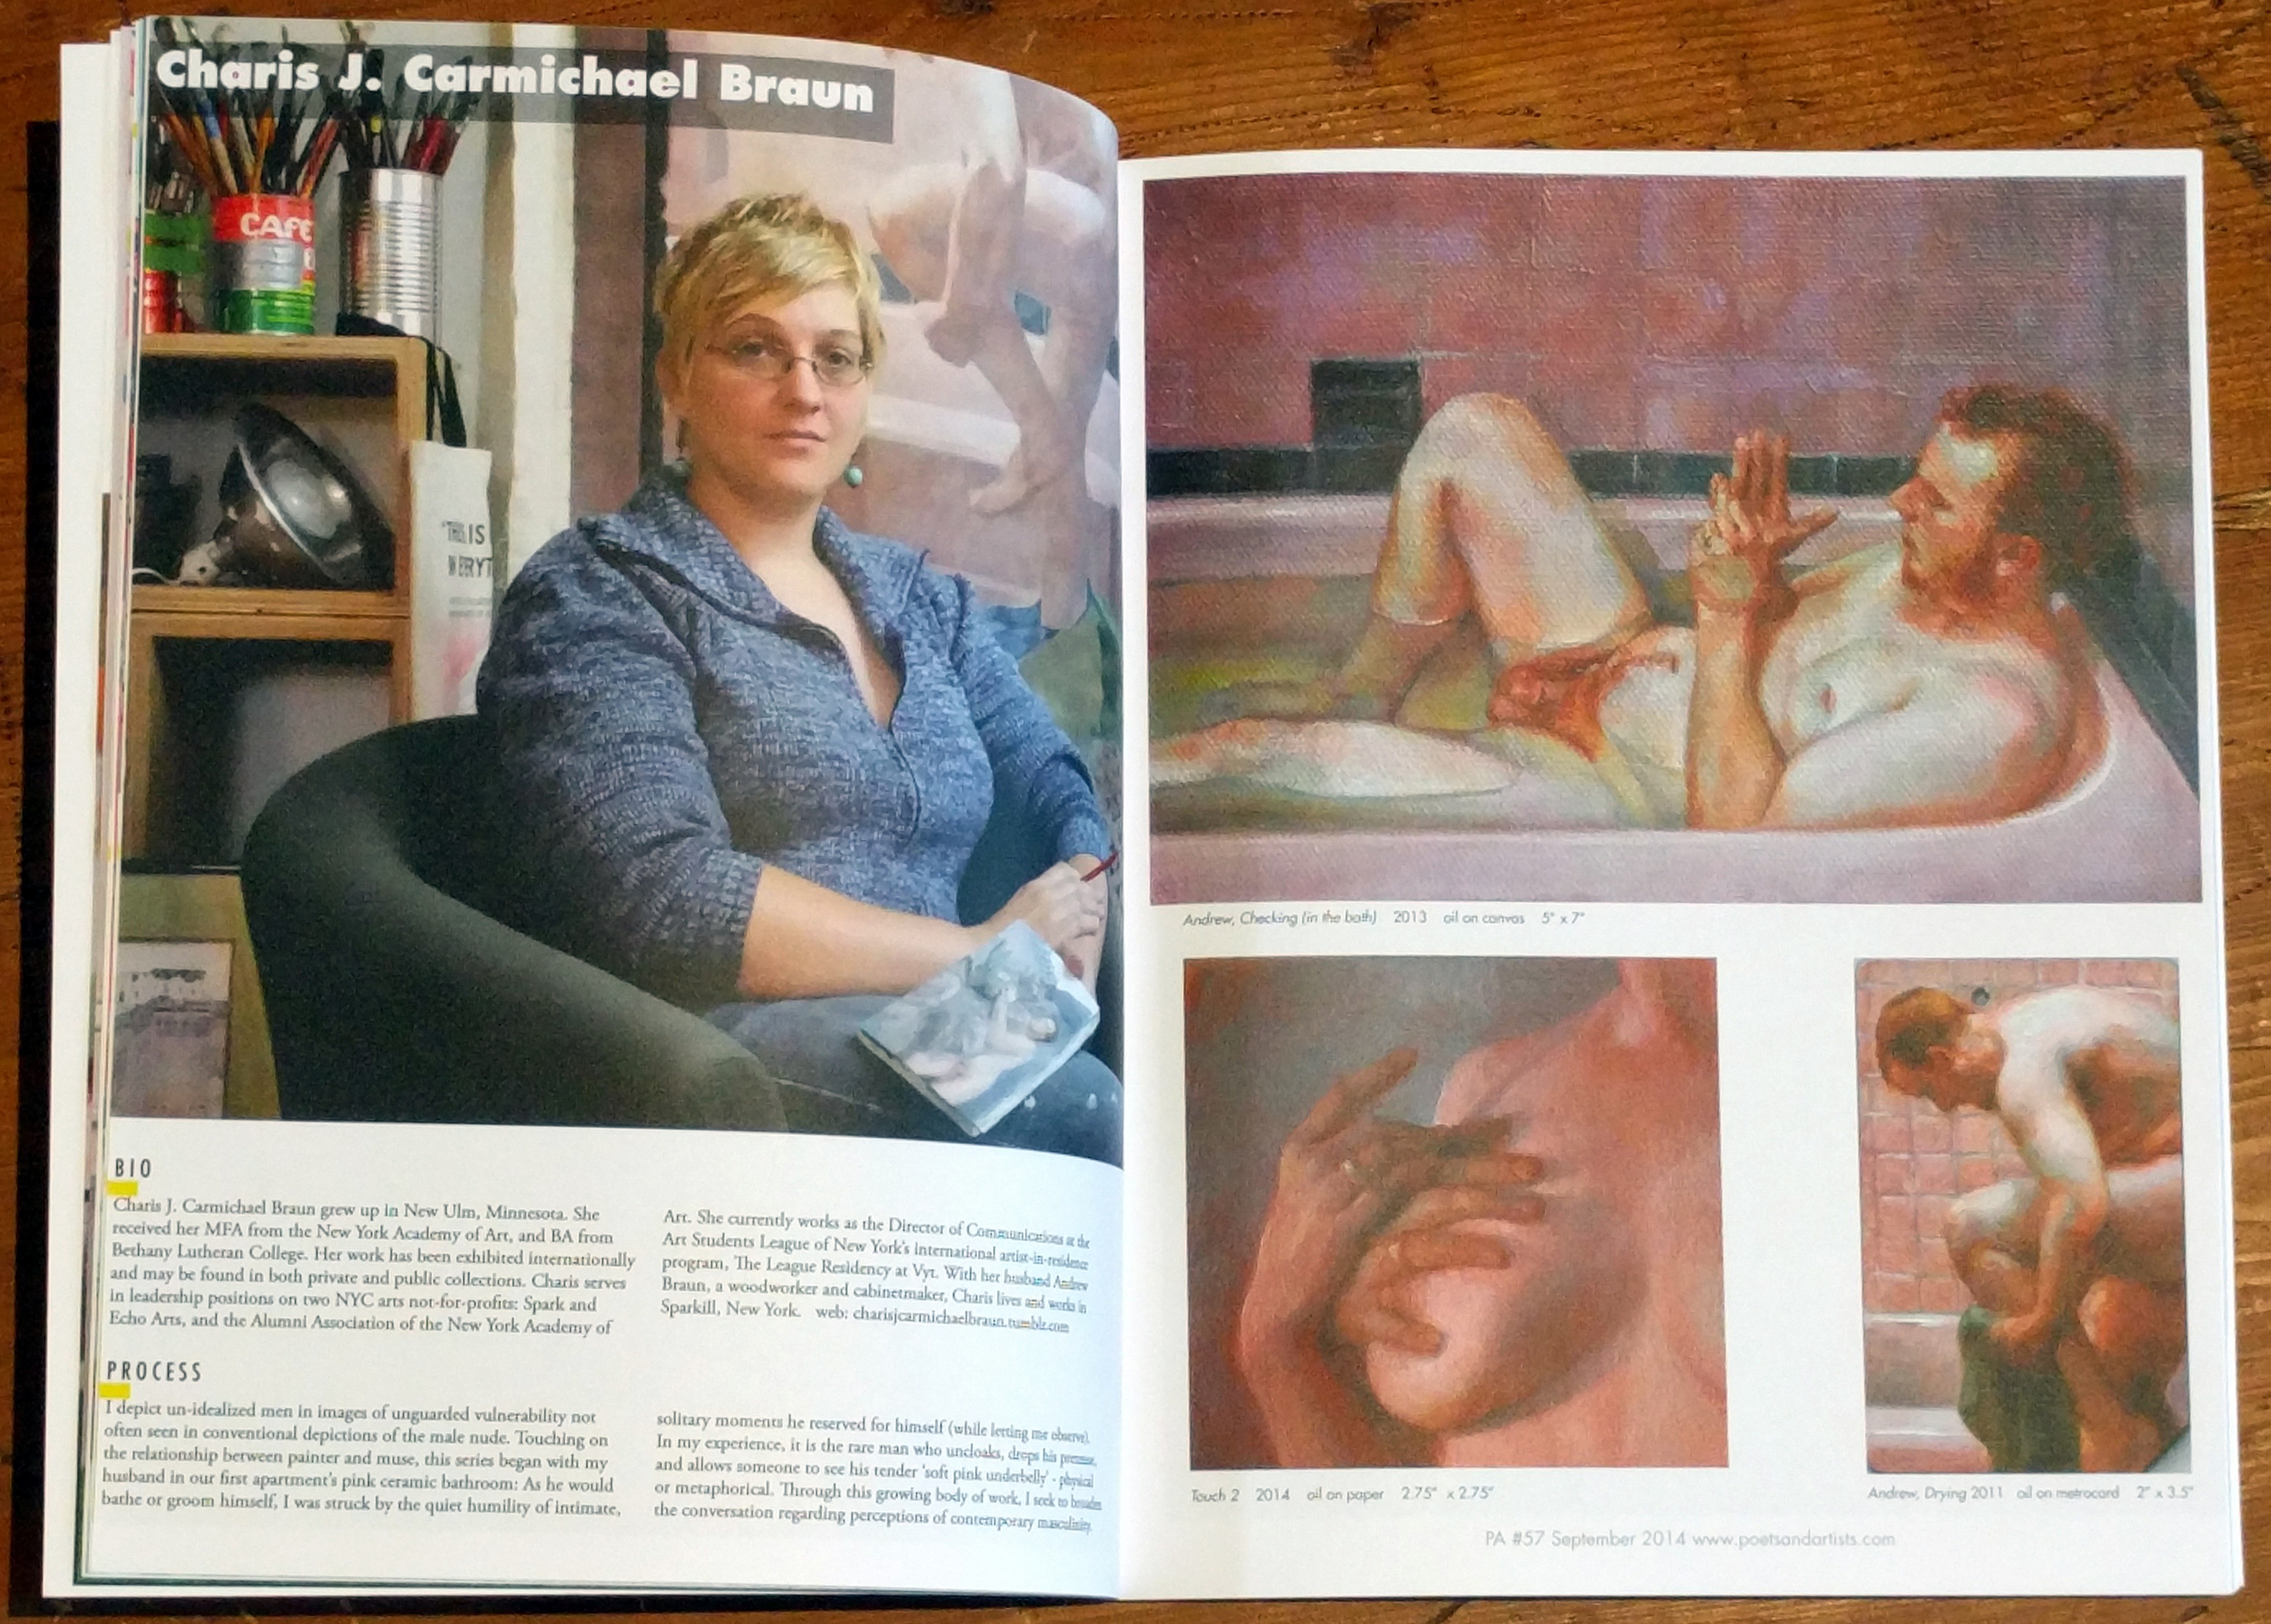 "Menendez, Didi. ""Charis J. Carmichael Braun.""   Poets and Artists  , Issue #57, September 2014: pp. 15-16. Print."